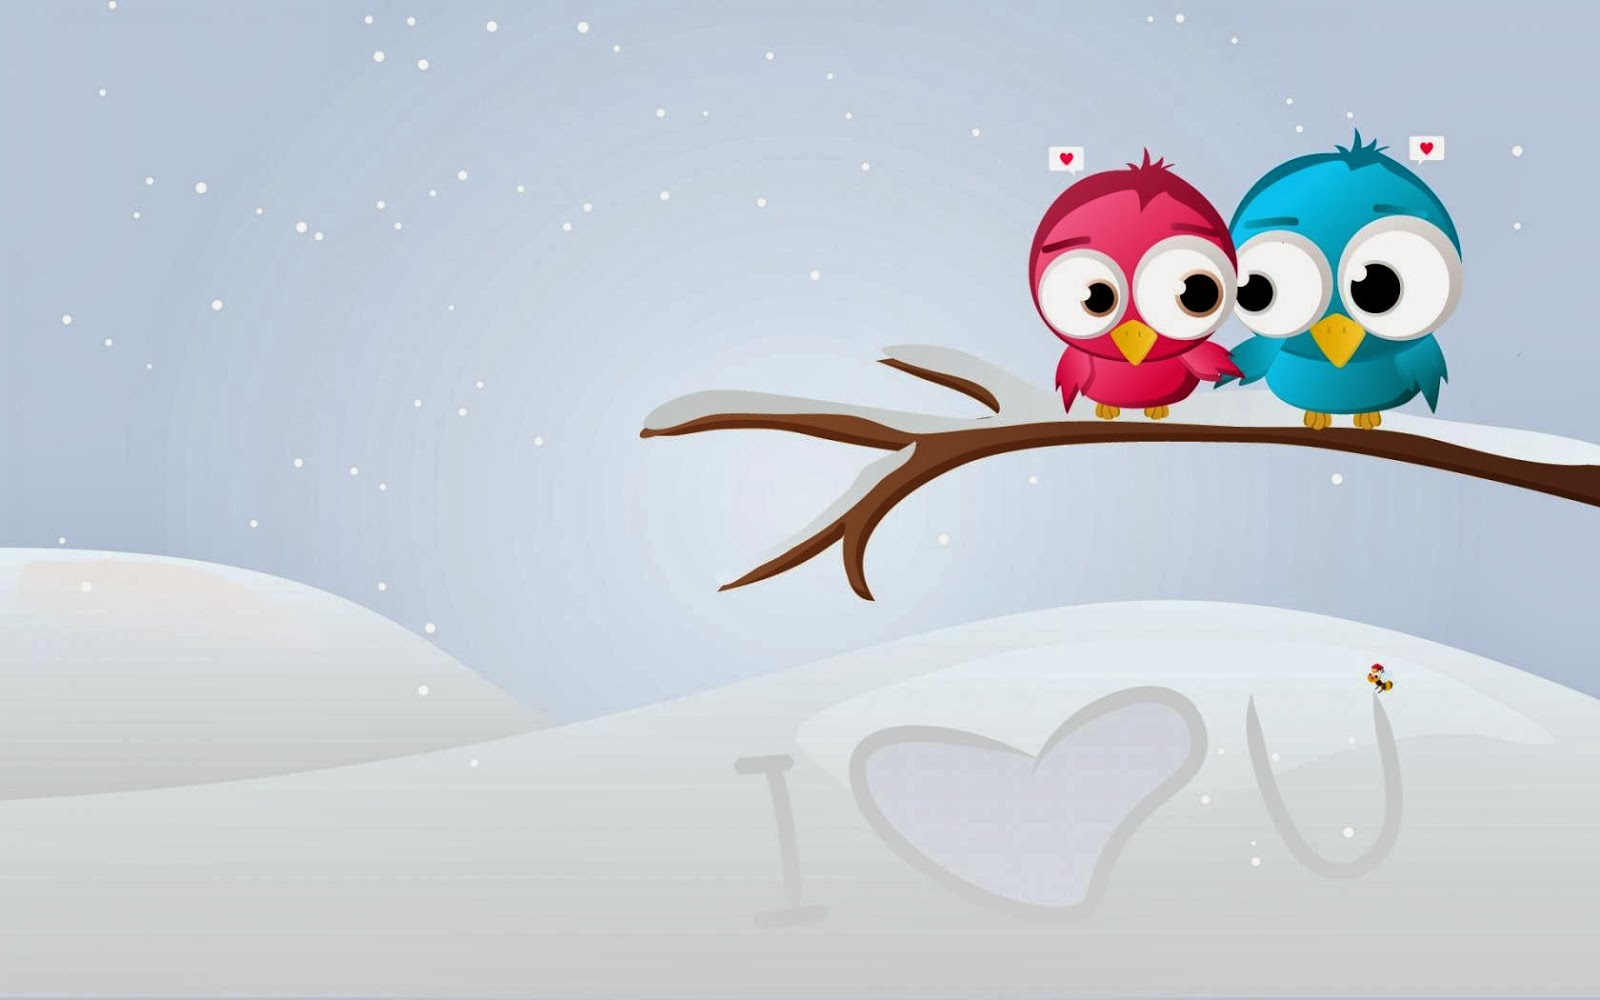 twitter-angry-birds-in-love-wallpaper-HD.jpg